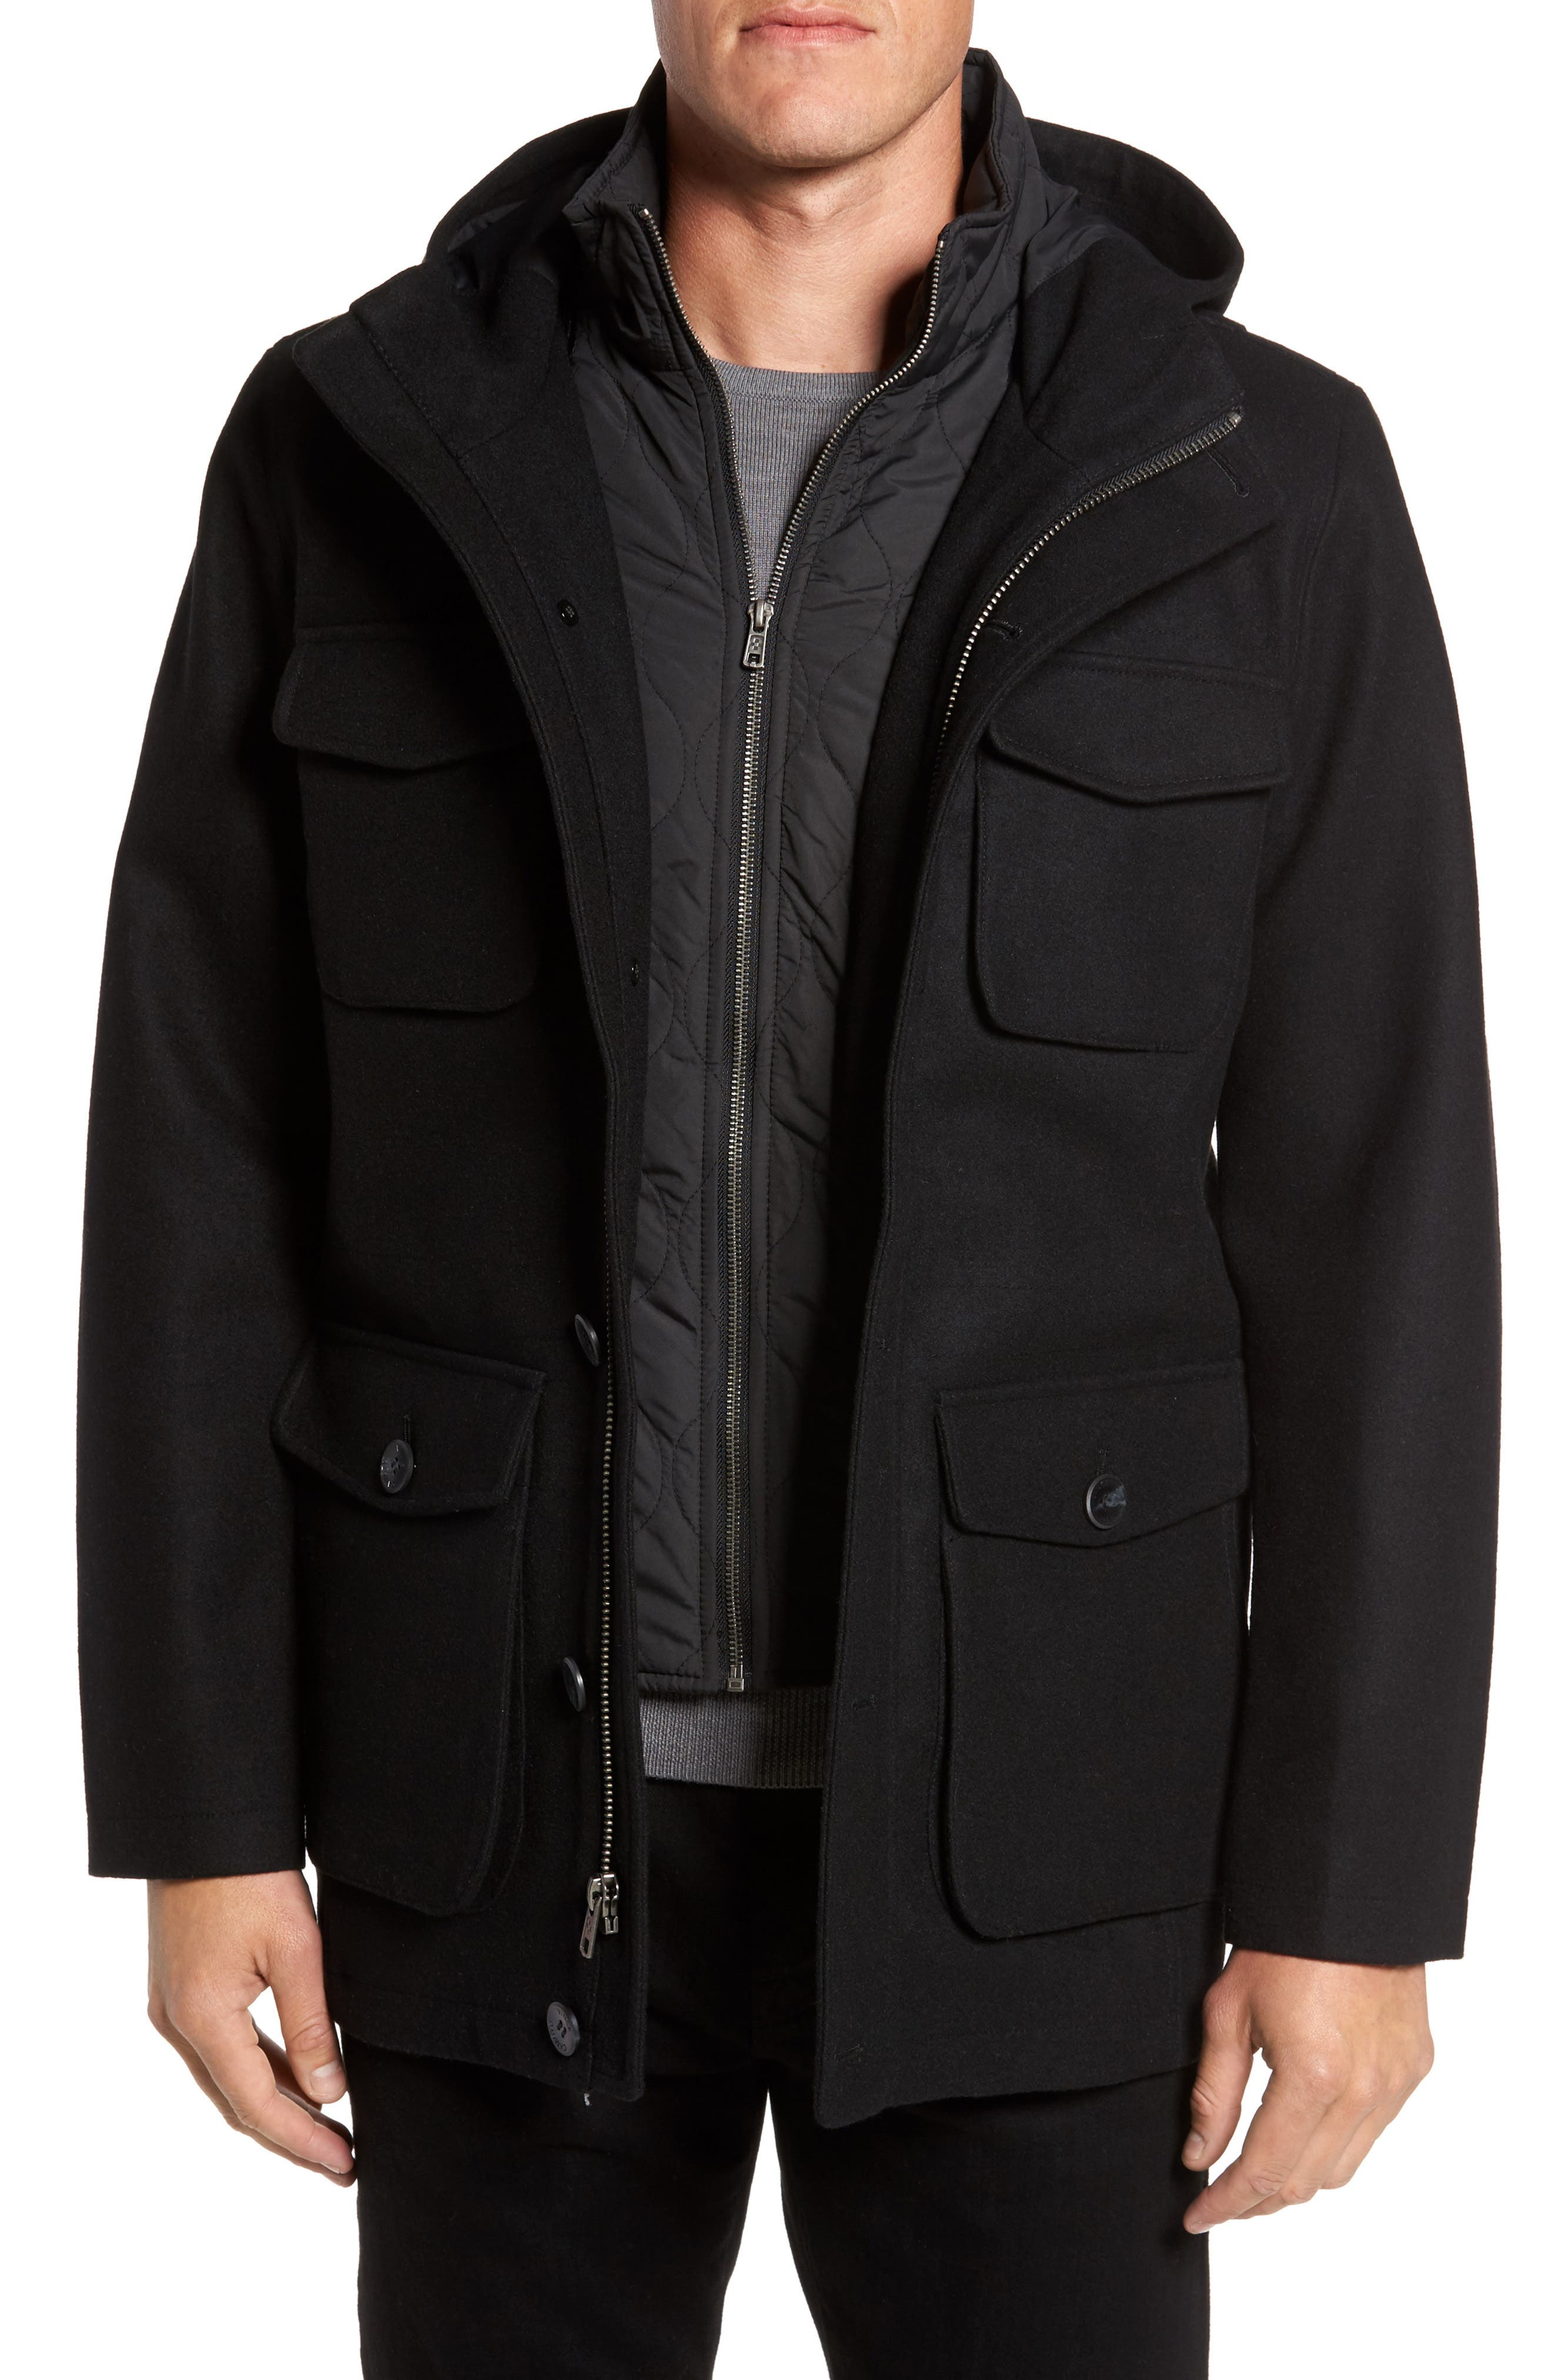 Hooded Jacket with Removable Bib,                             Main thumbnail 1, color,                             001